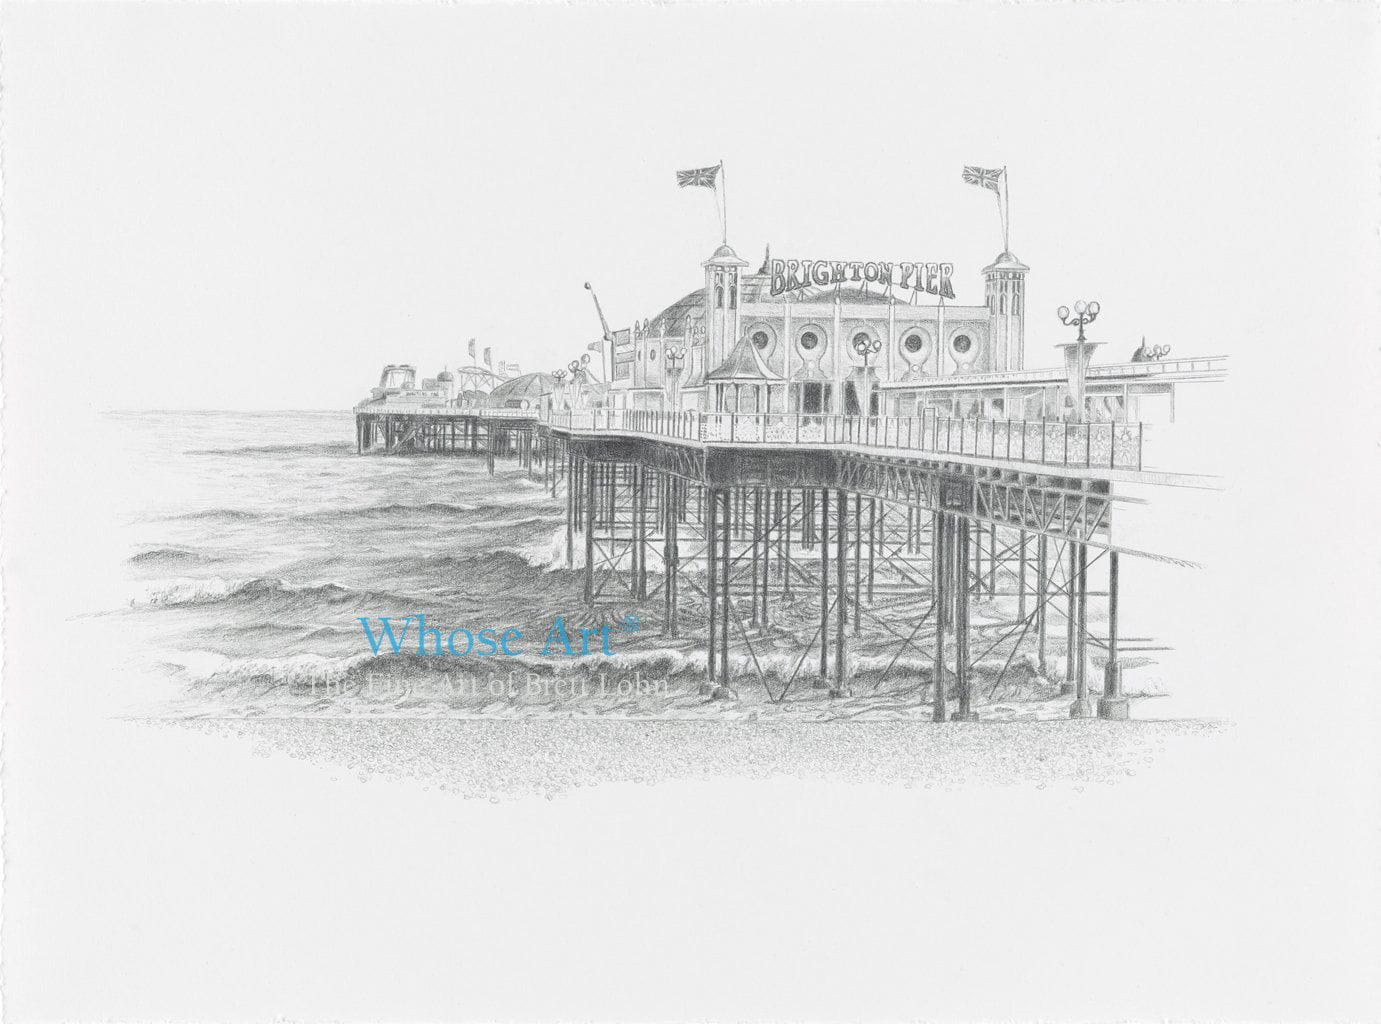 A pencil drawing of Brighton Pier shown viewing the front of the palace pier. This is a delicately shaded piece of pencil art